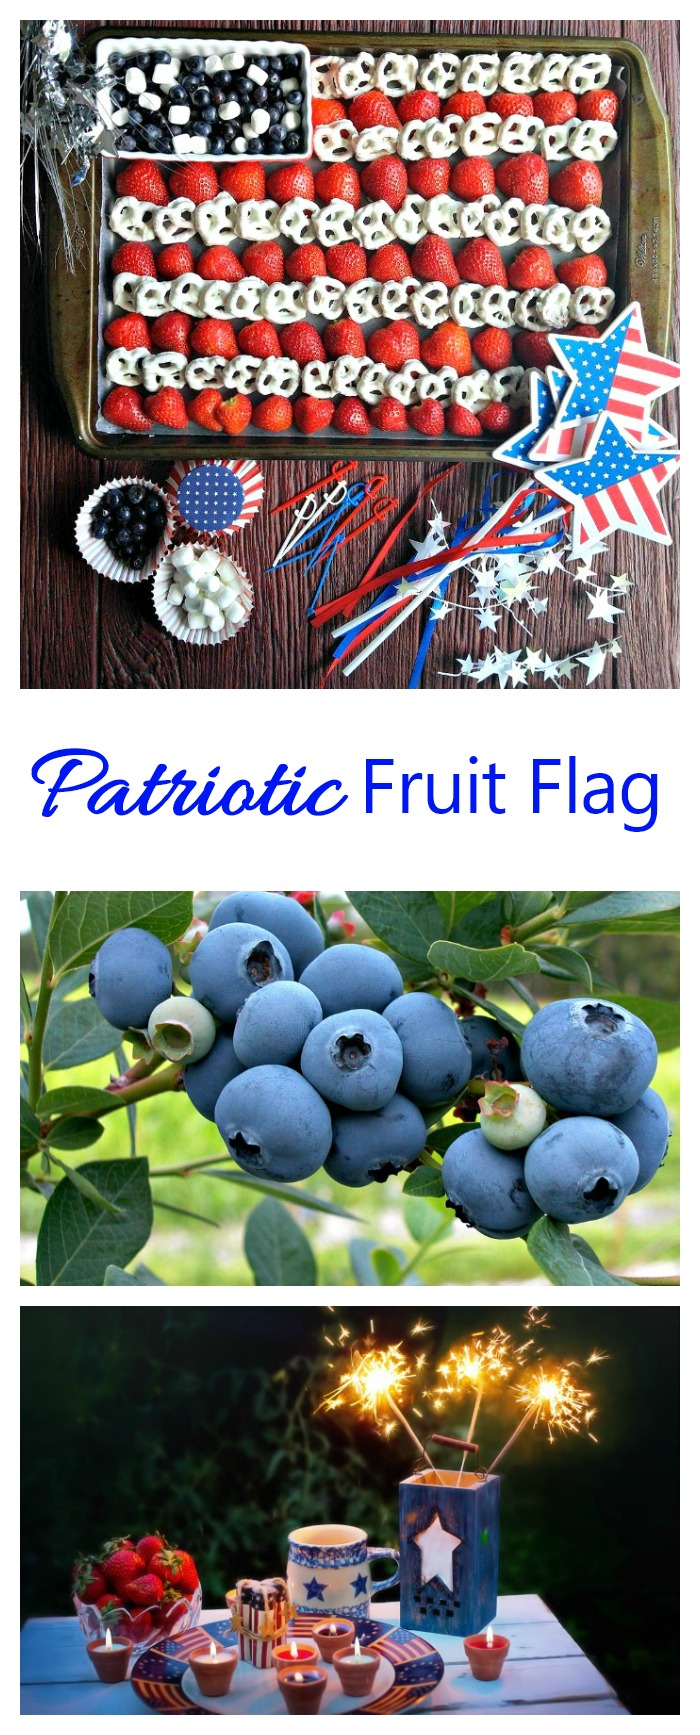 This Easy 4th of July Fruit platter is decorative and fun. It's perfect for Memorial day or the 4th of July